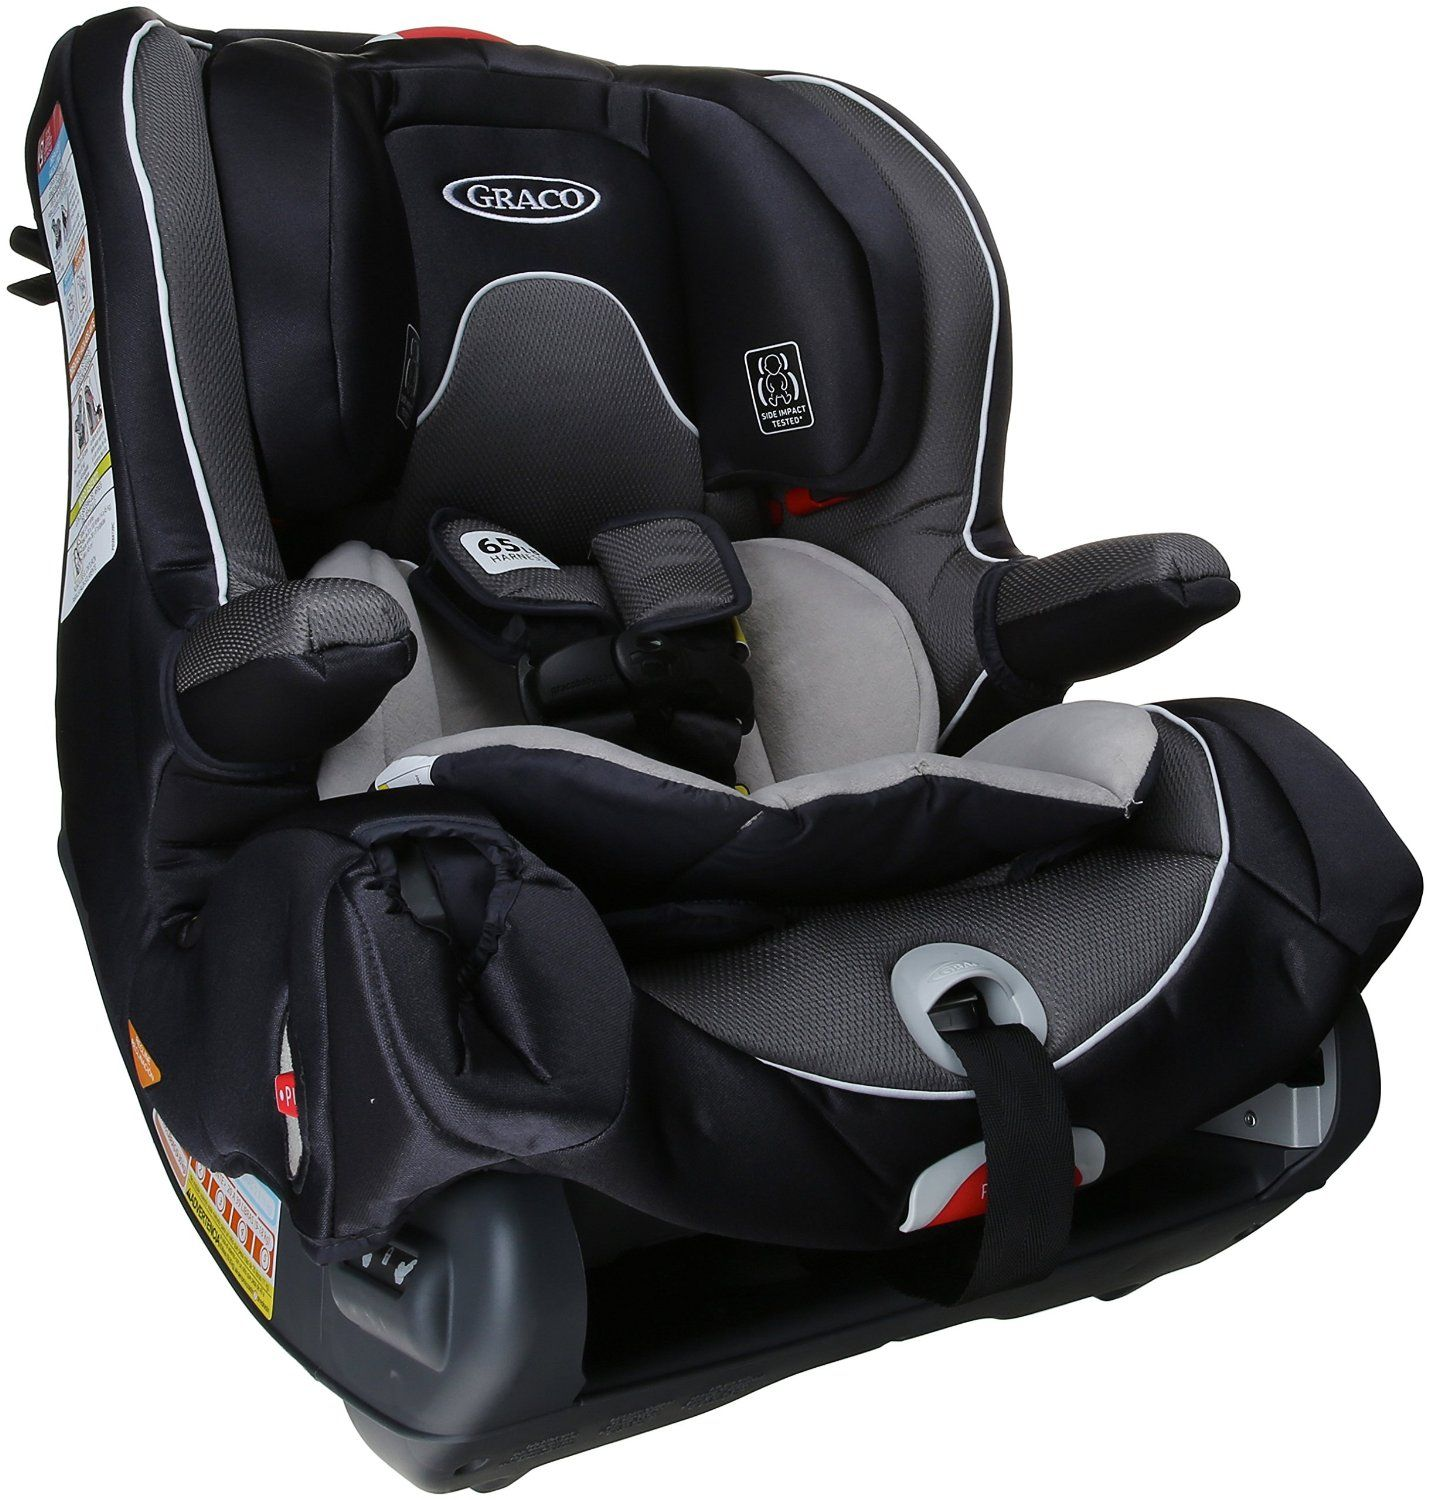 Graco SmartSeat AllinOne Car Seat Convertible Car Seat